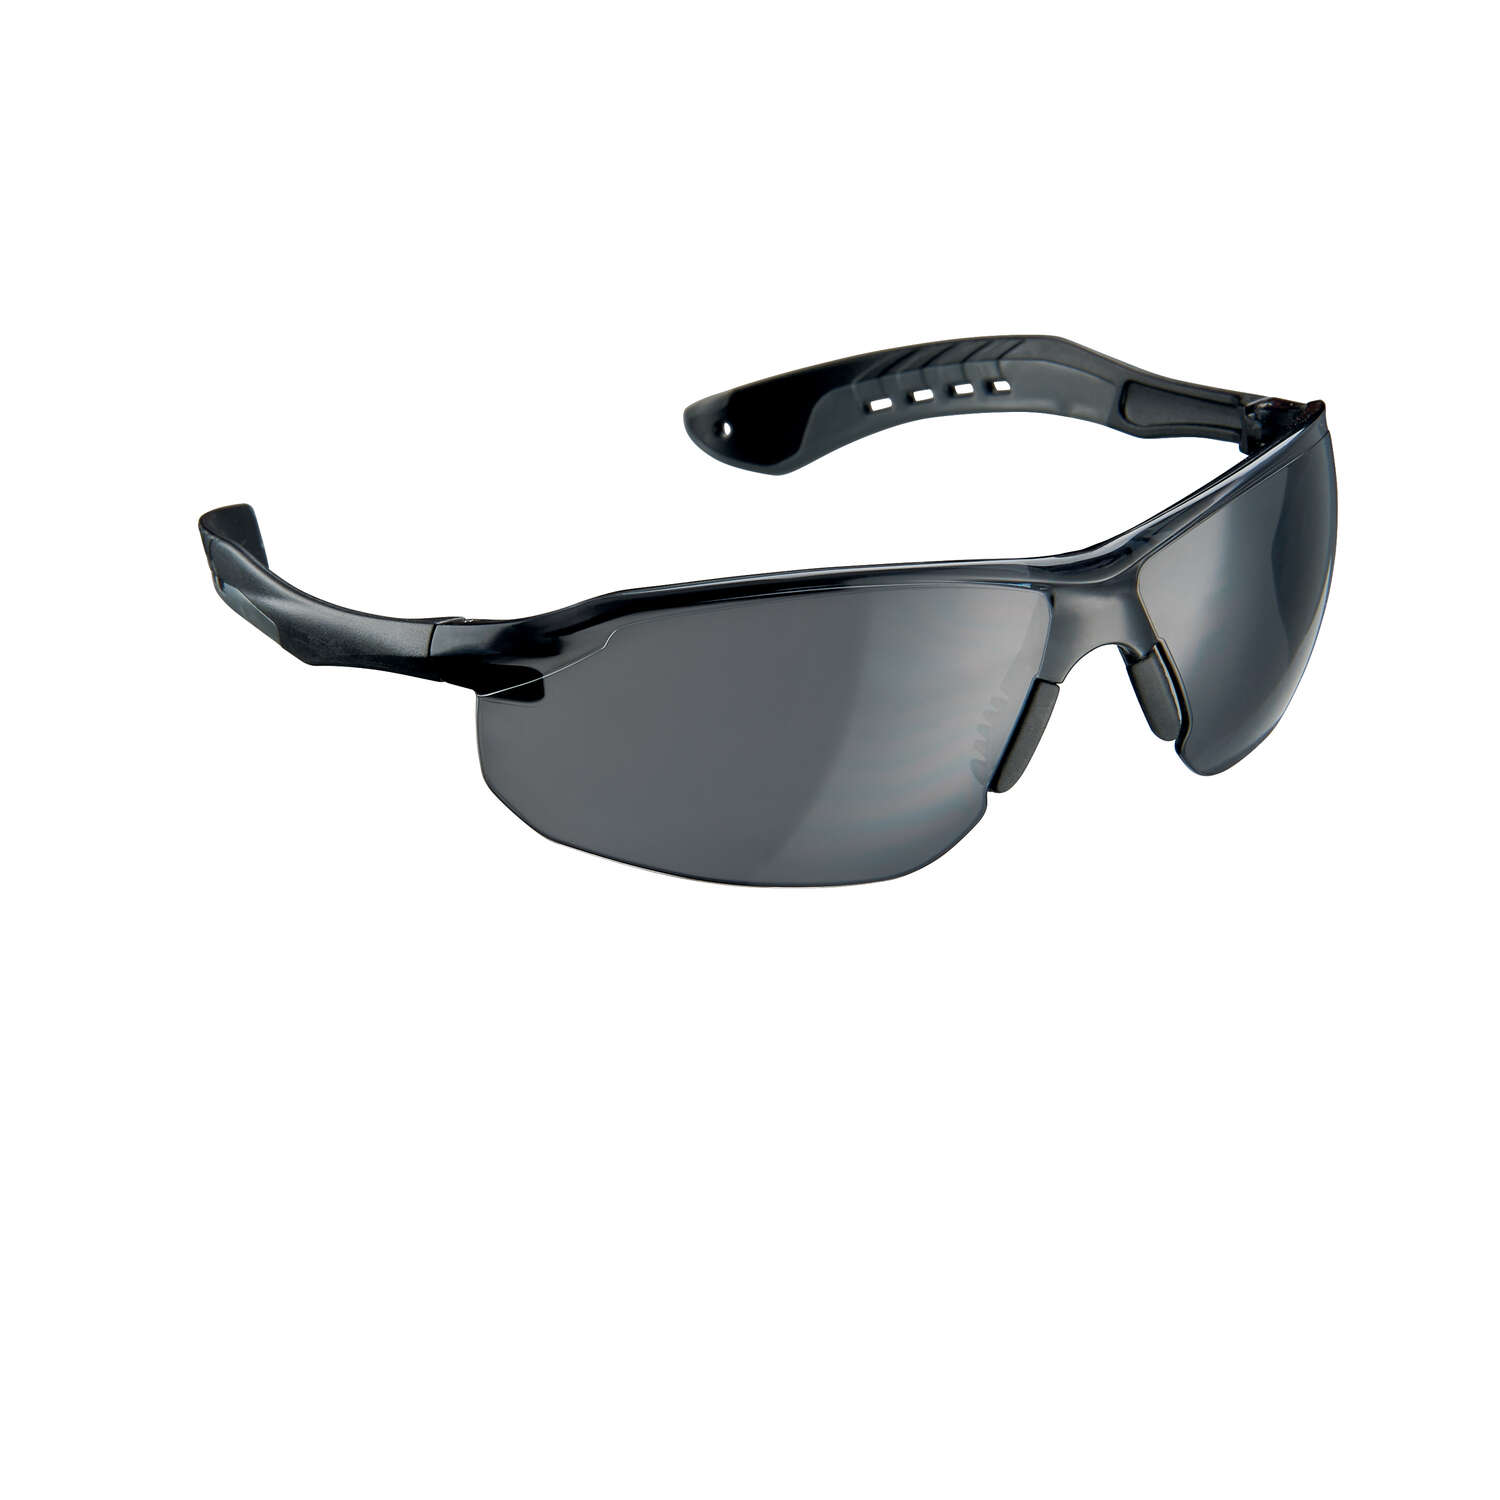 3M  Black  Gray  Safety Glasses  1